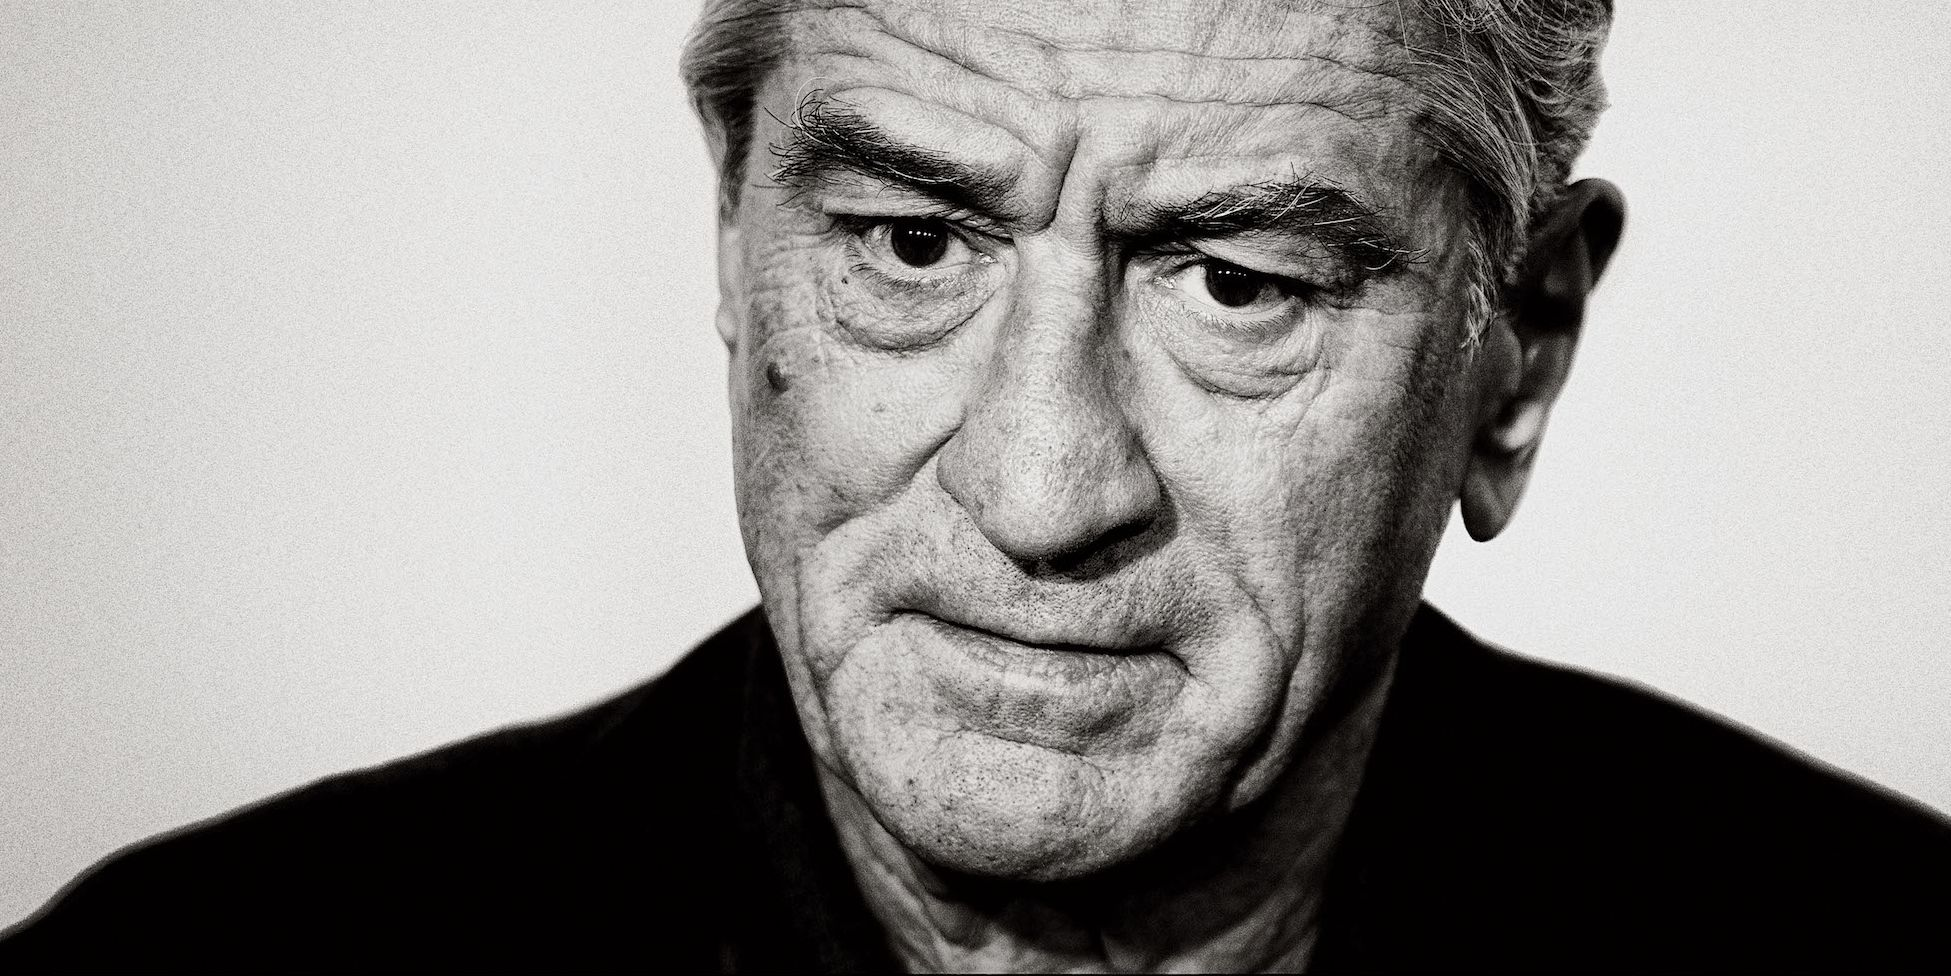 De Niro Tears Into Trump This Fcking Idiot Is The President The Jerkoff In Chief